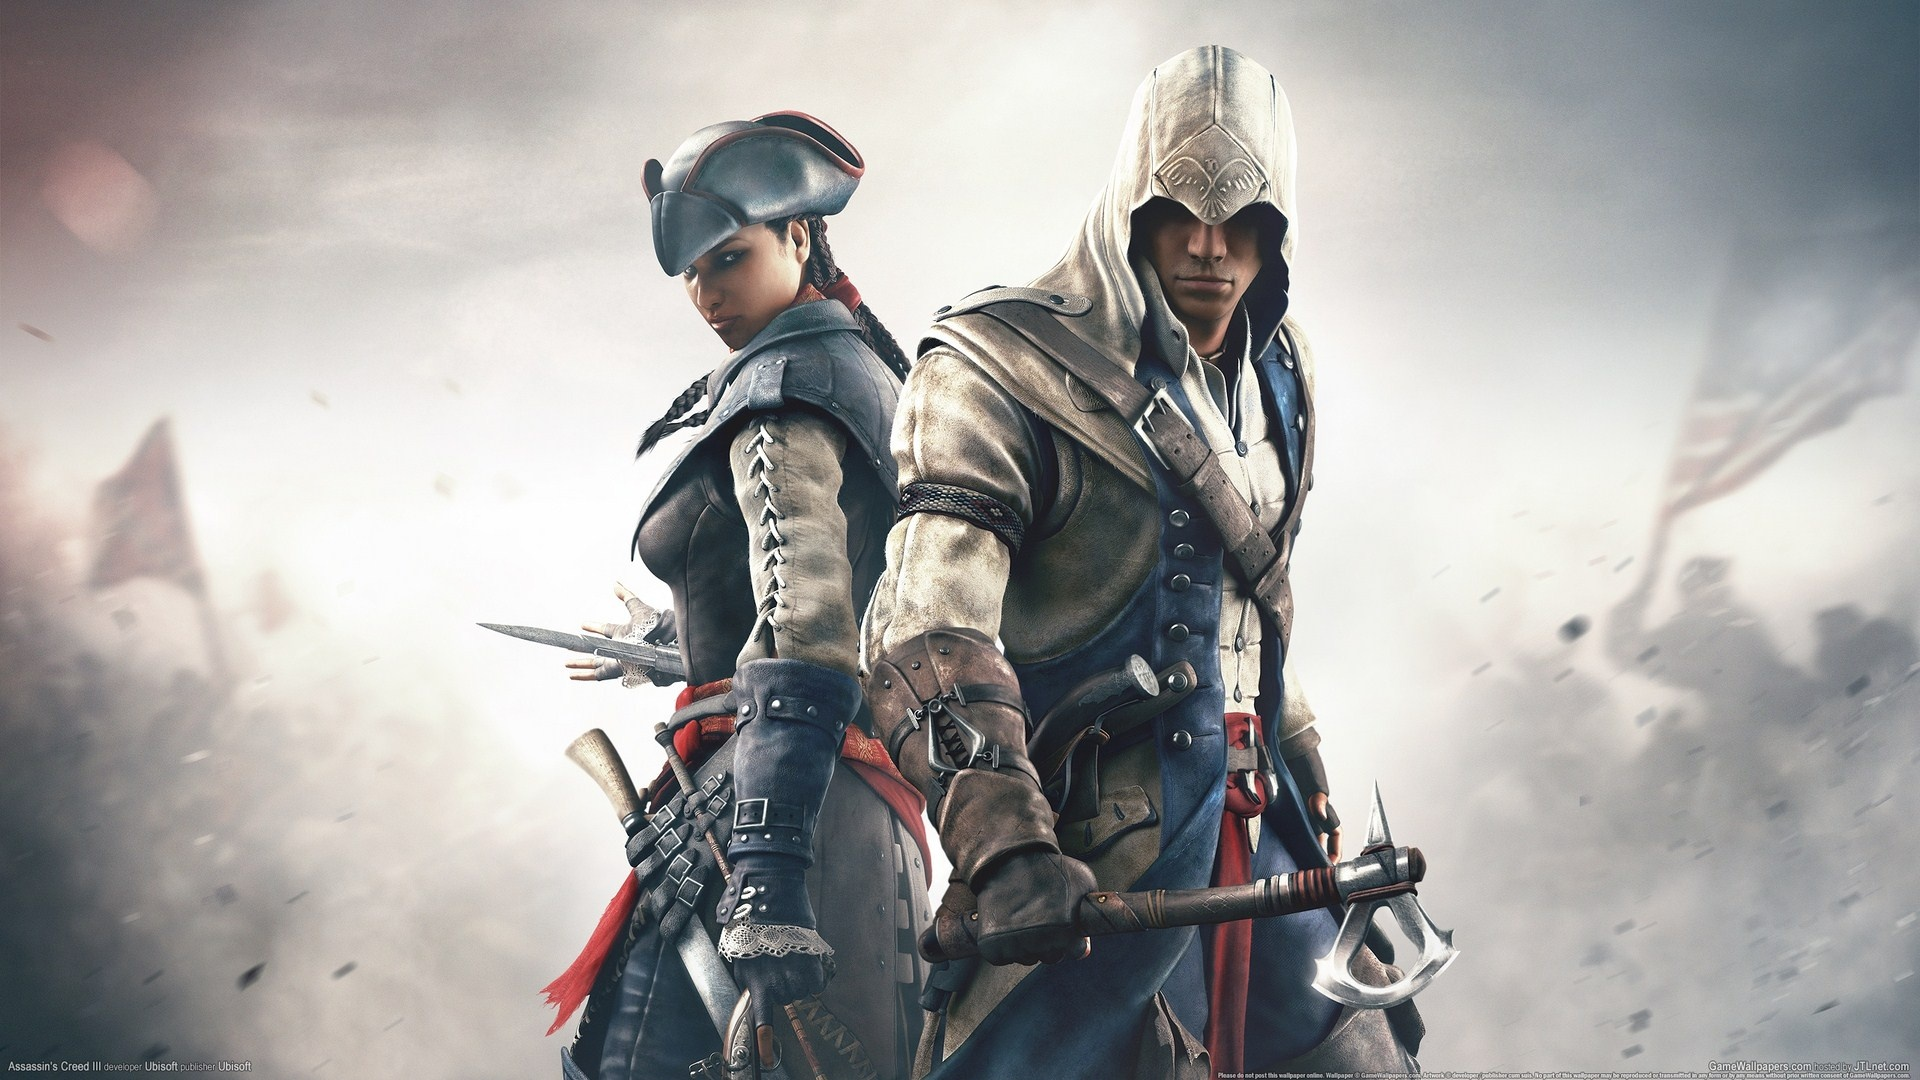 Wallpaper assassins creed 3 pc game 1920x1080 full hd picture image download this wallpaper voltagebd Gallery